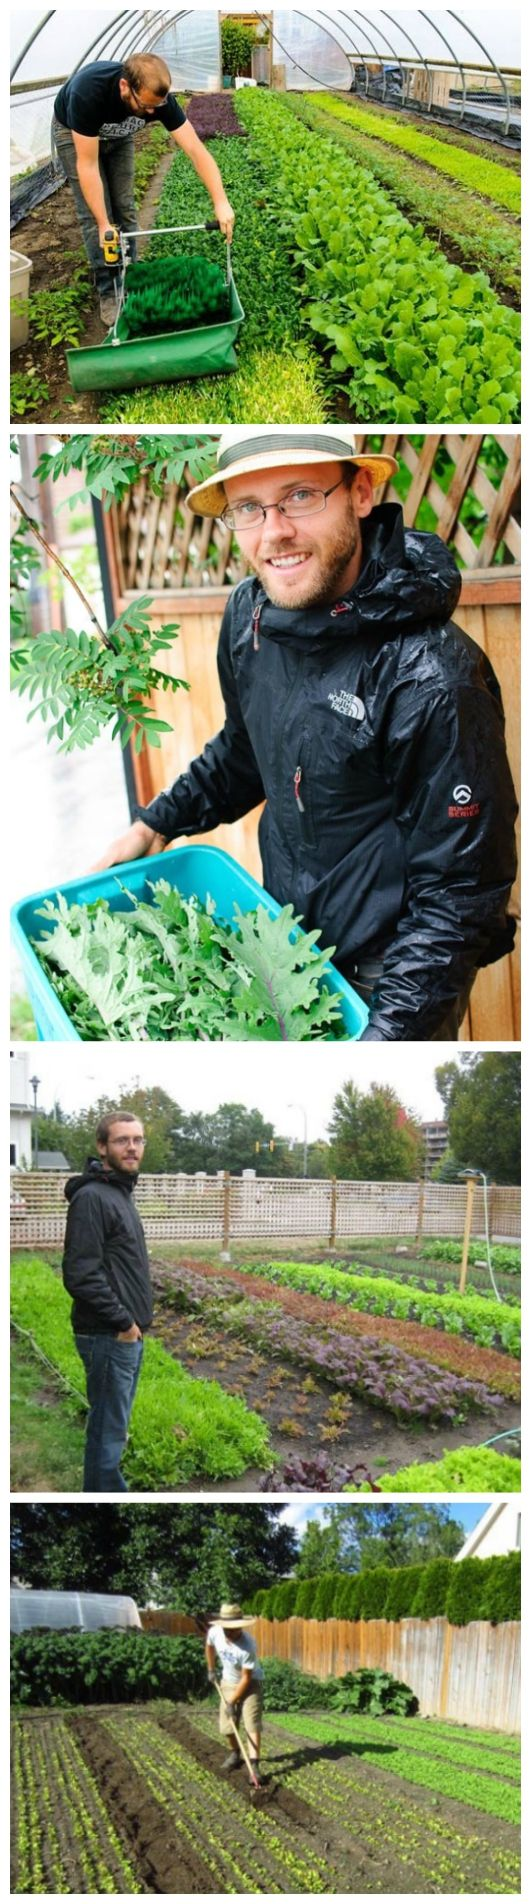 Urban Farming: Growing For Profit – $75,000 on 1/3 acre